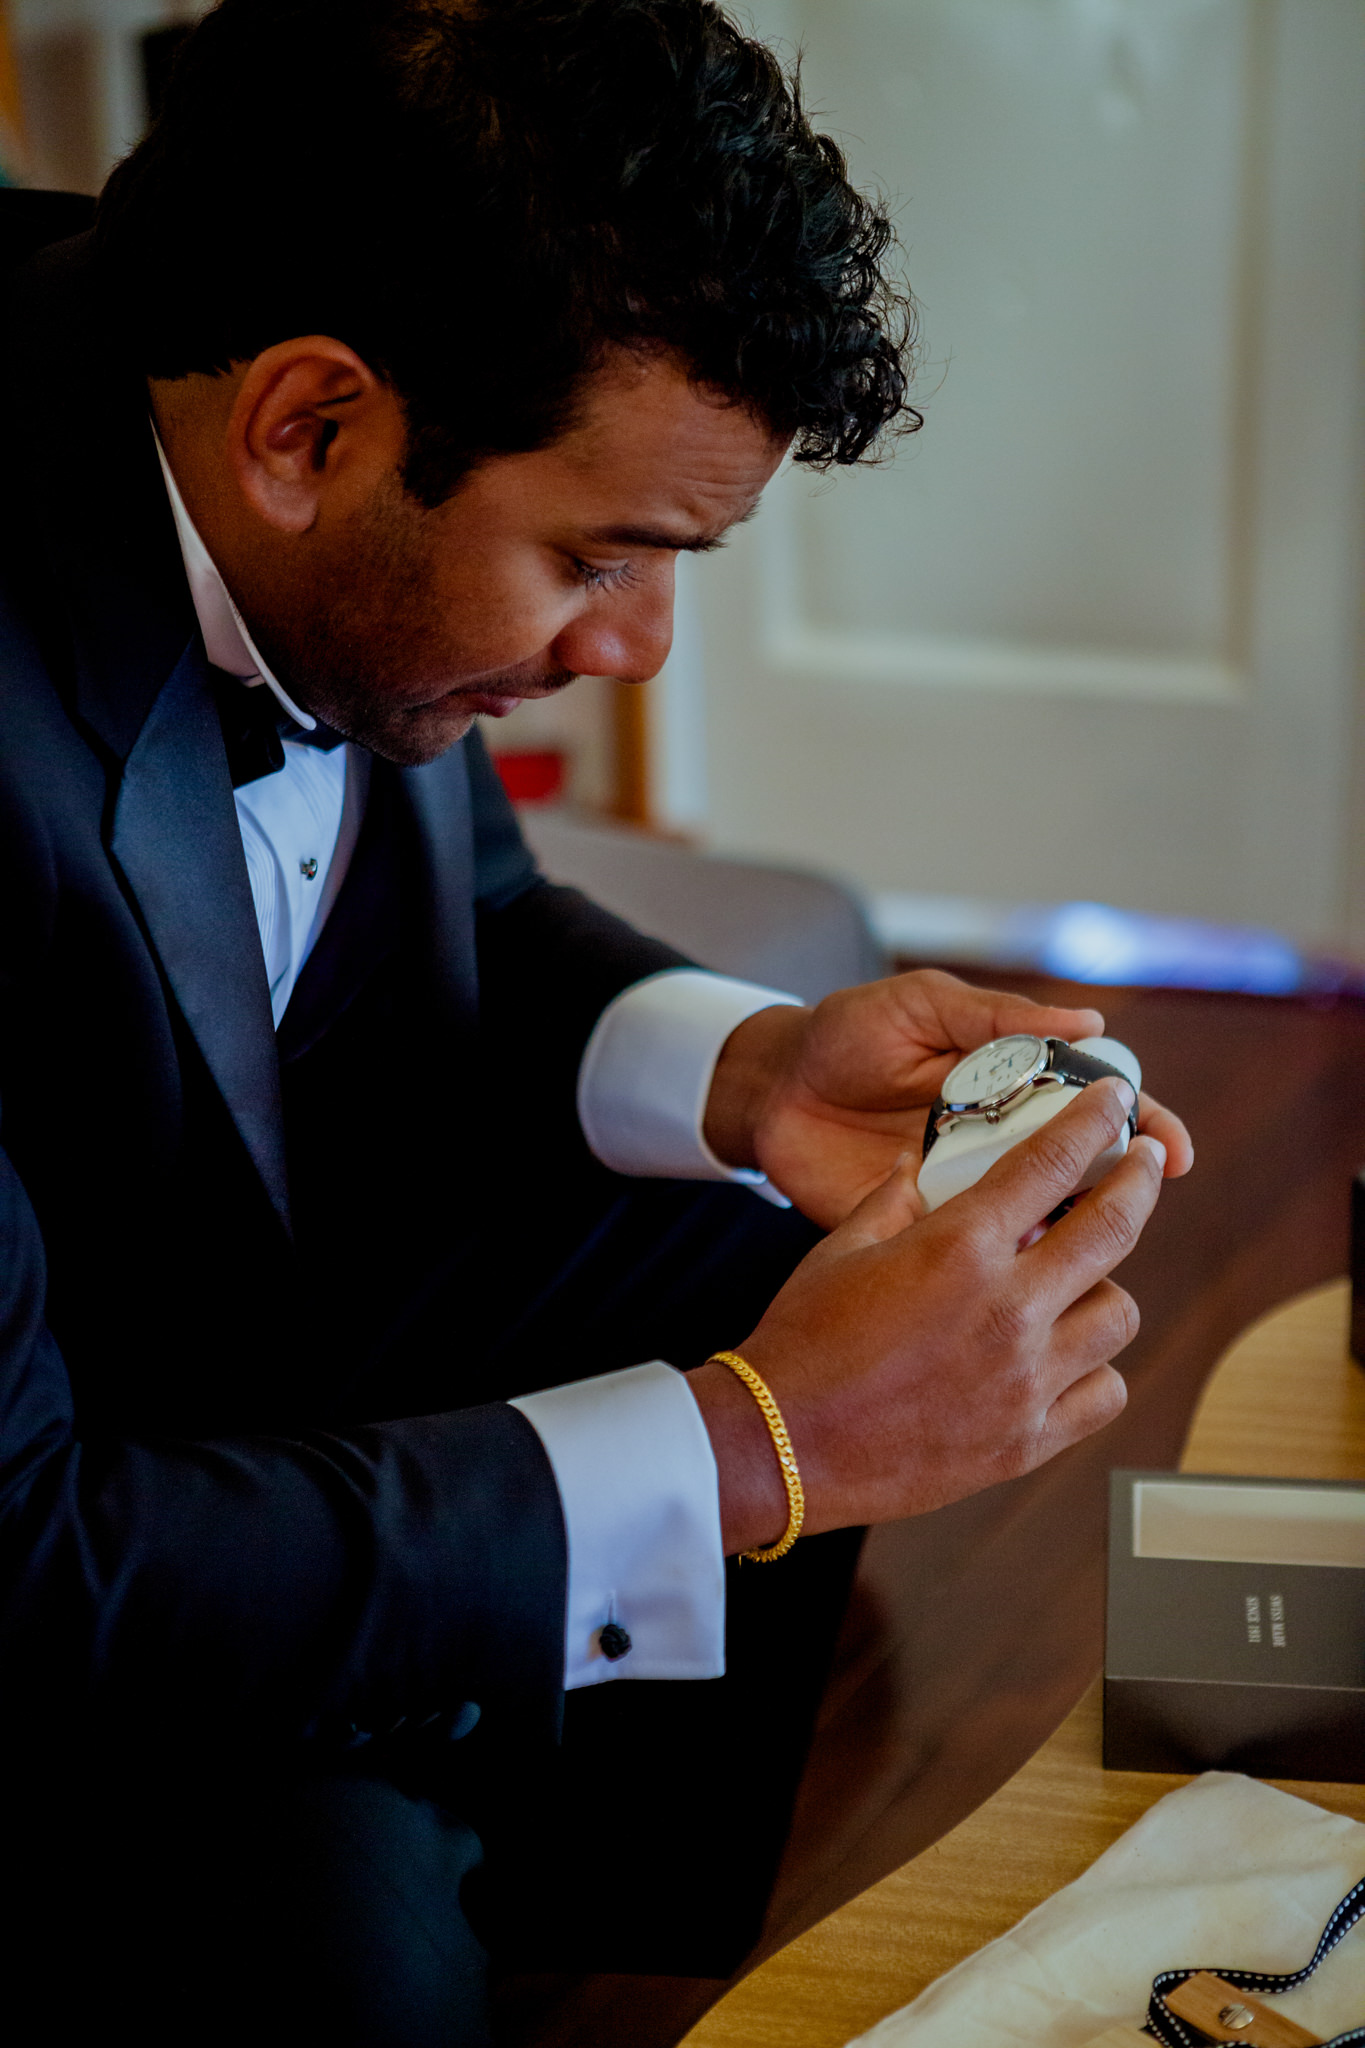 Groom cries as he admires a new watch given as a wedding gift